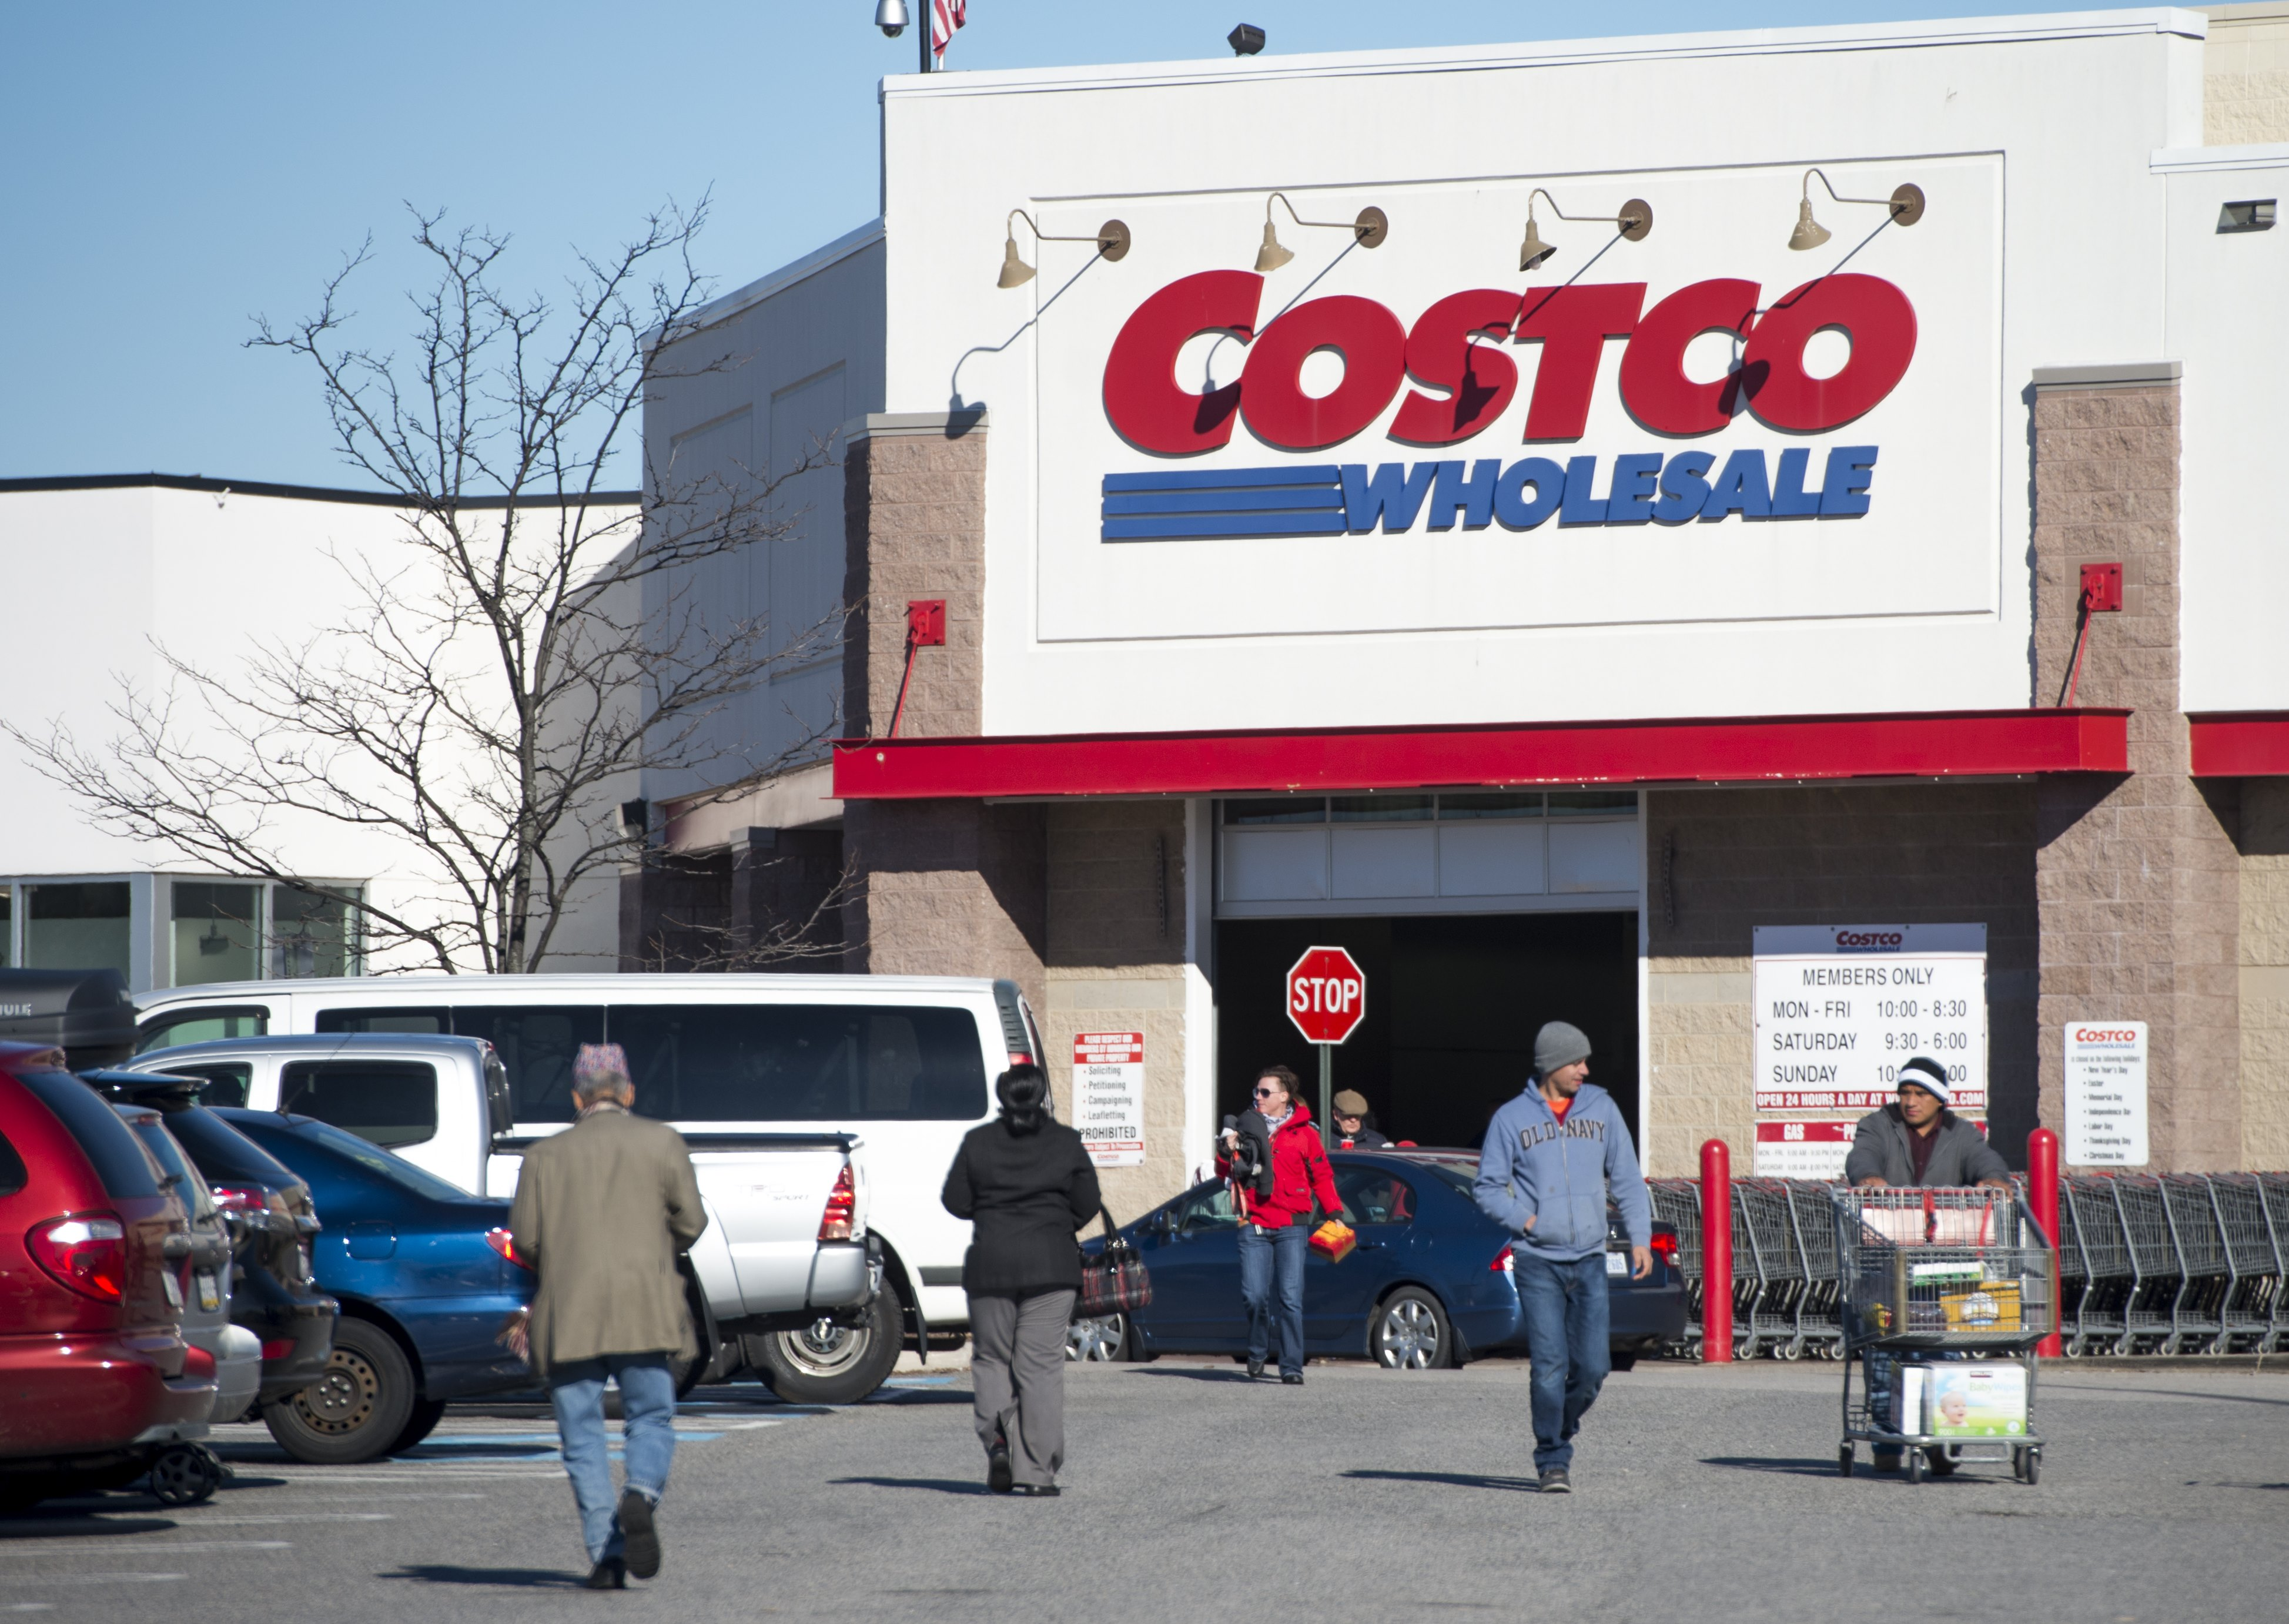 Is Costco open on holidays?